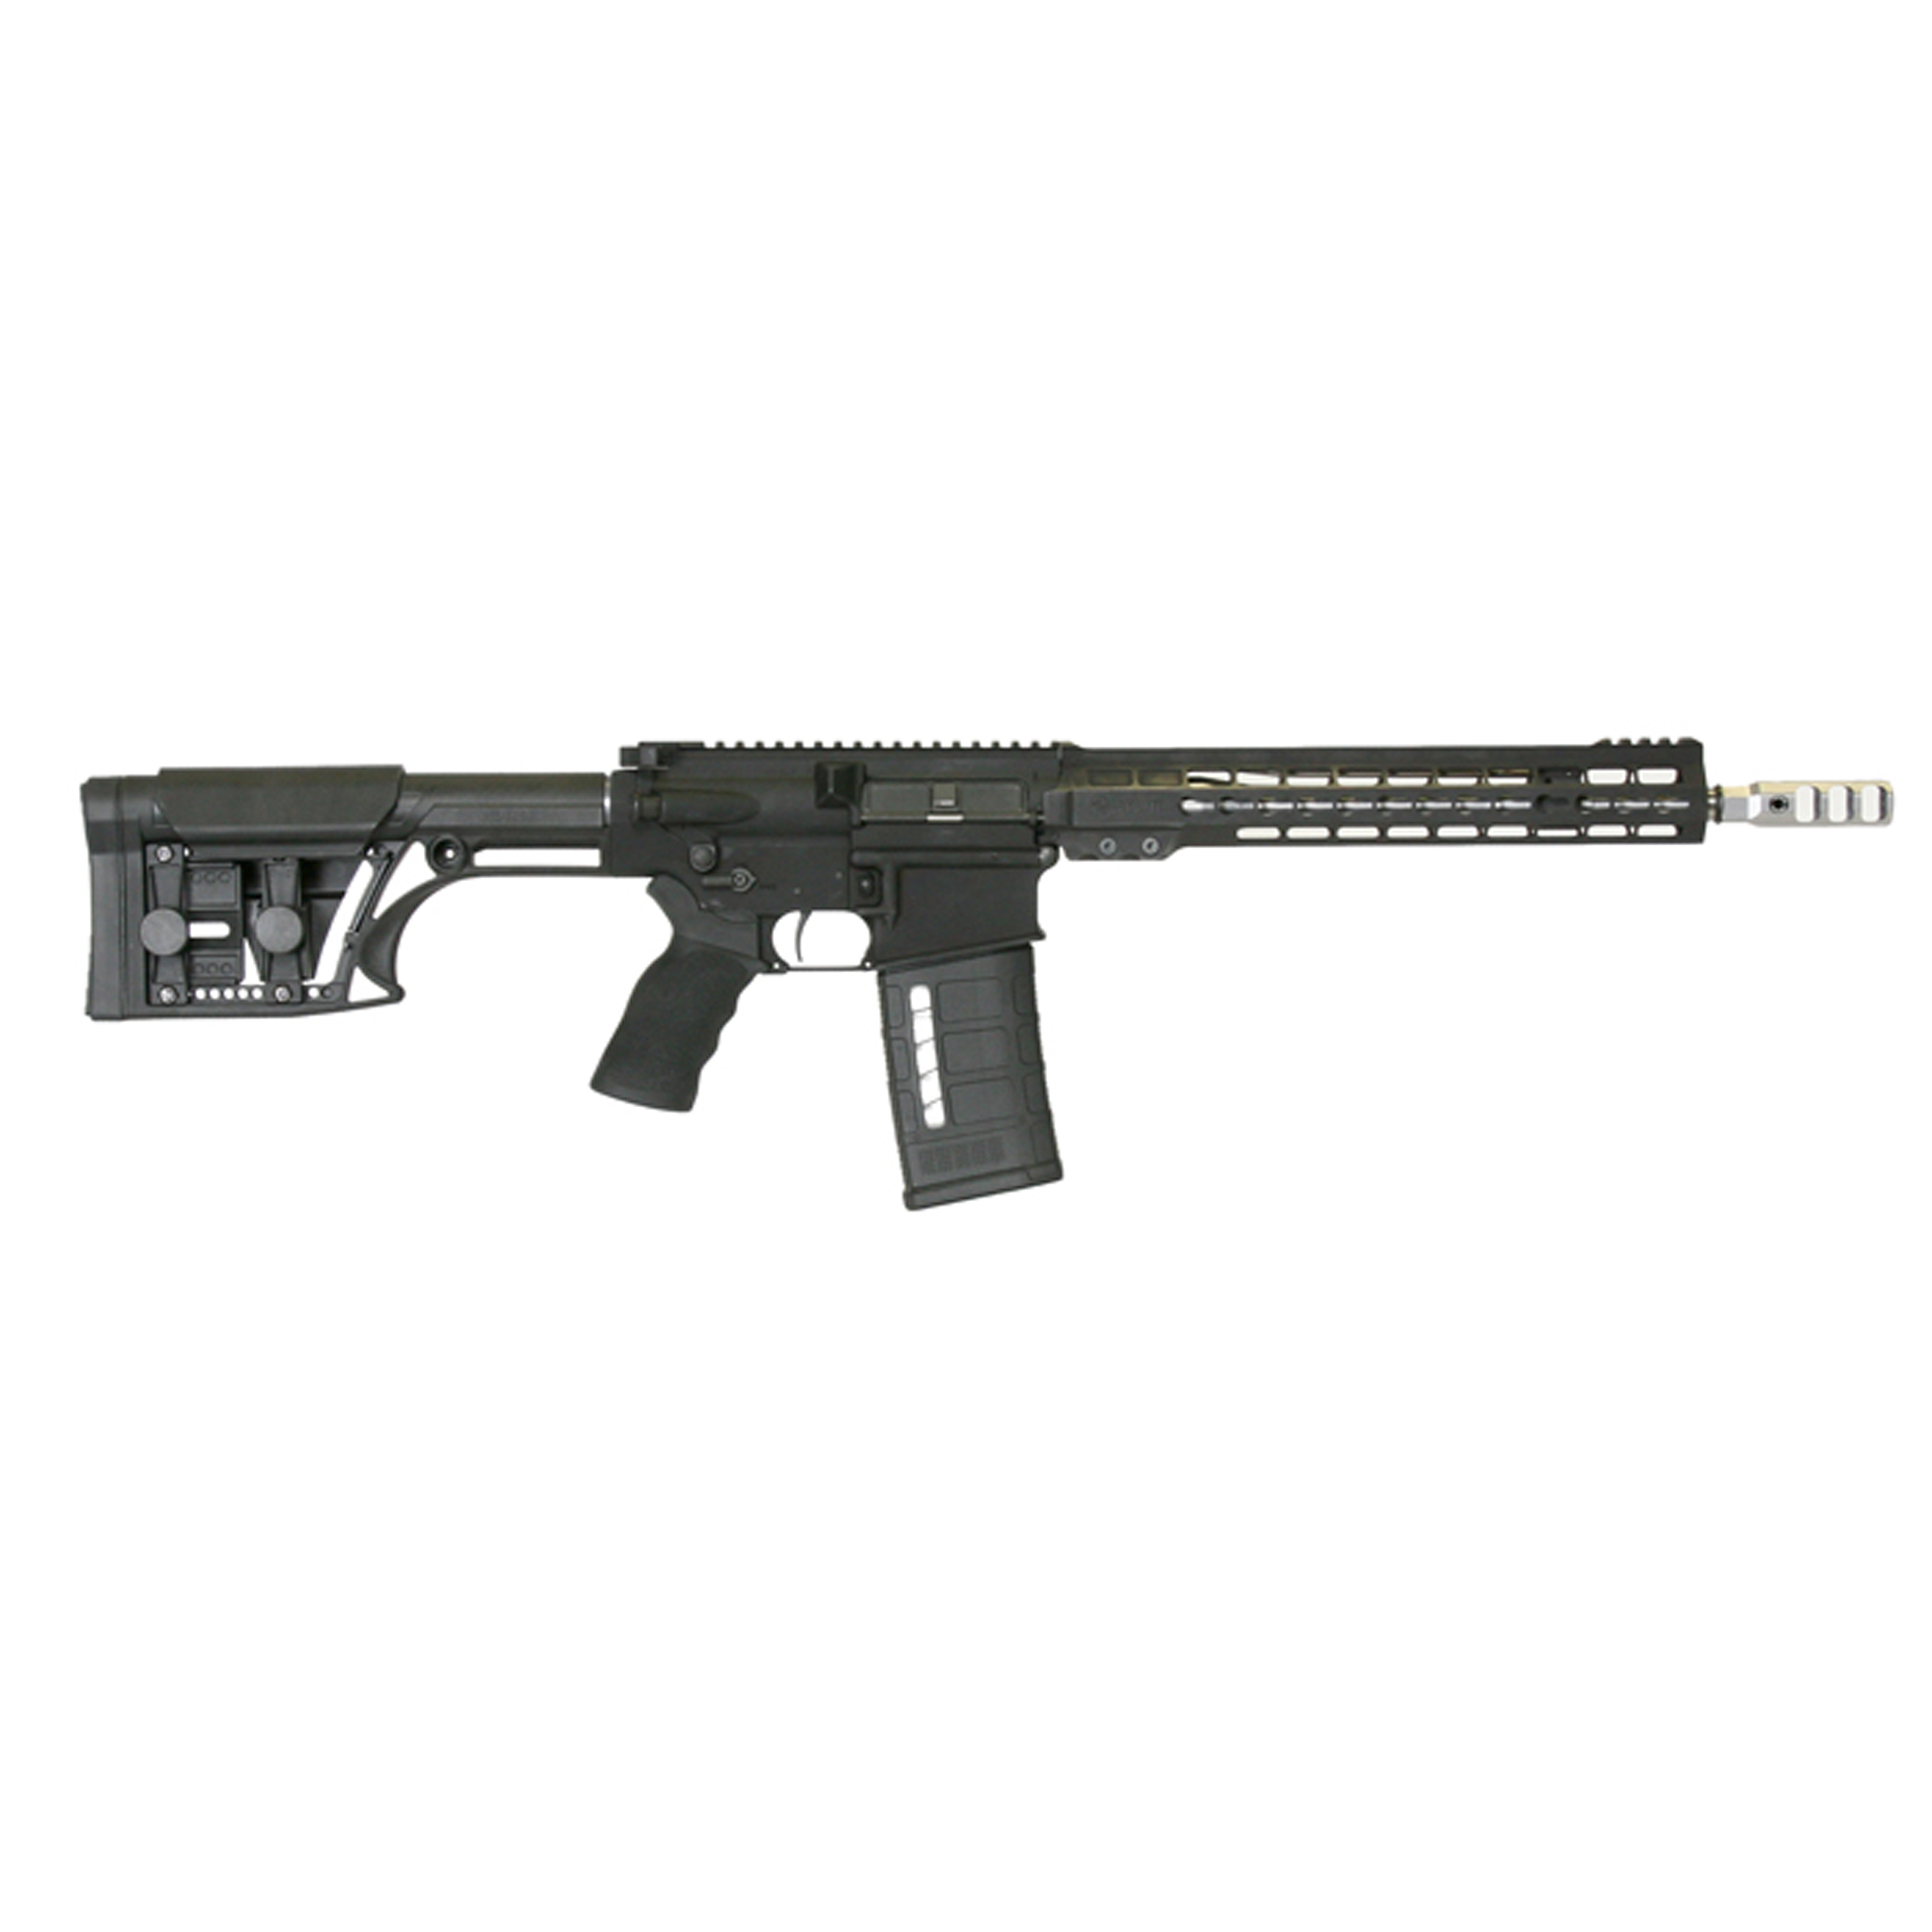 """Purpose built for 3-Gun and practical rifle competition"""" the AR103GN13's are ready to dominate"""" right out-of-the-box. A Timney 4-lb."""" single-stage trigger and Ergo wide grip come standard. The light weight MBA-1 buttstock features an adjustable cheek piece and length-of-pull. The factory ambidextrous safety and Raptor charging handle provide ease of operation for all types of shooters."""